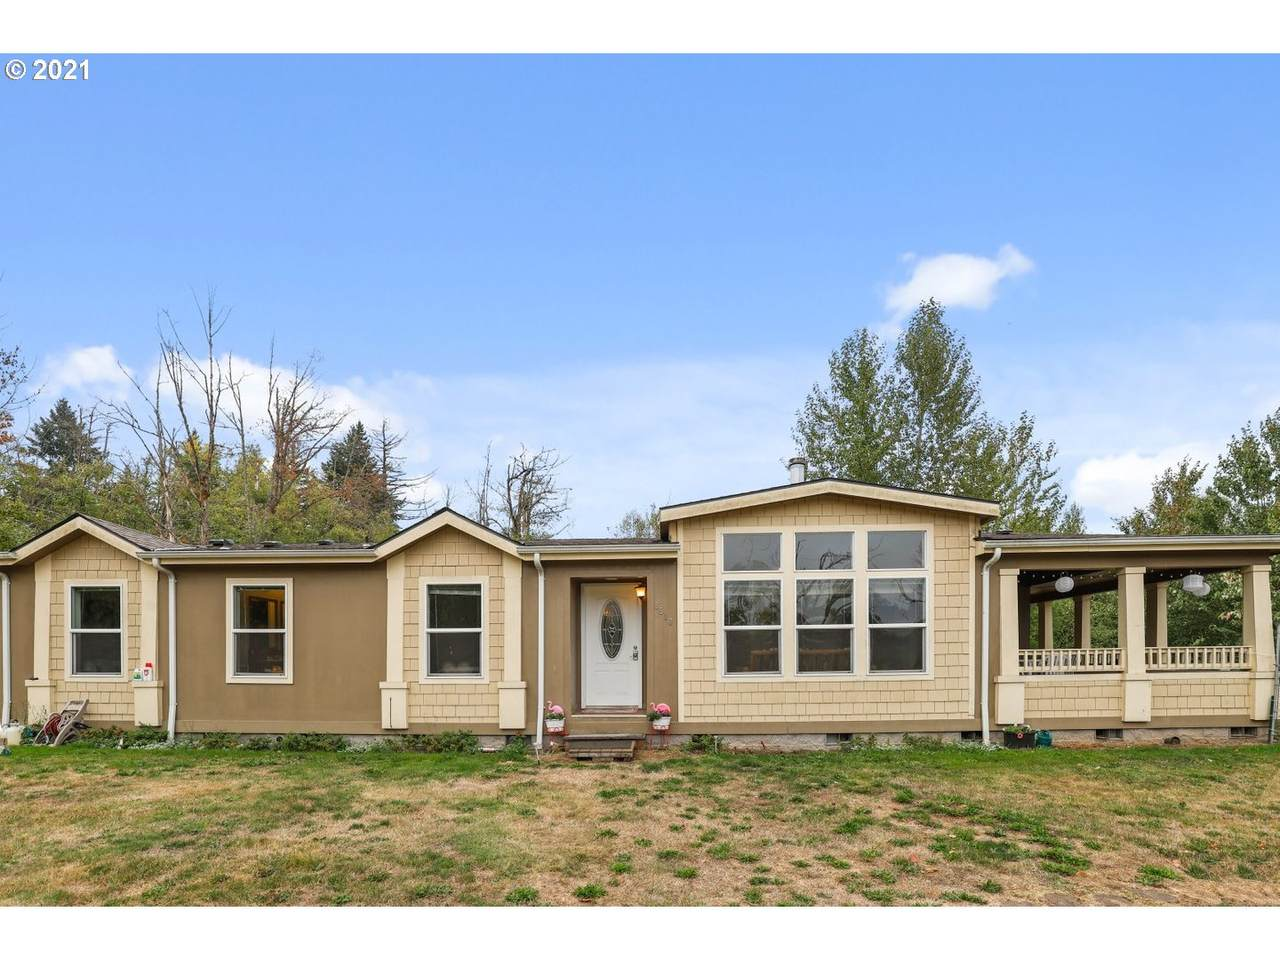 8510 307TH Ave - Photo 1